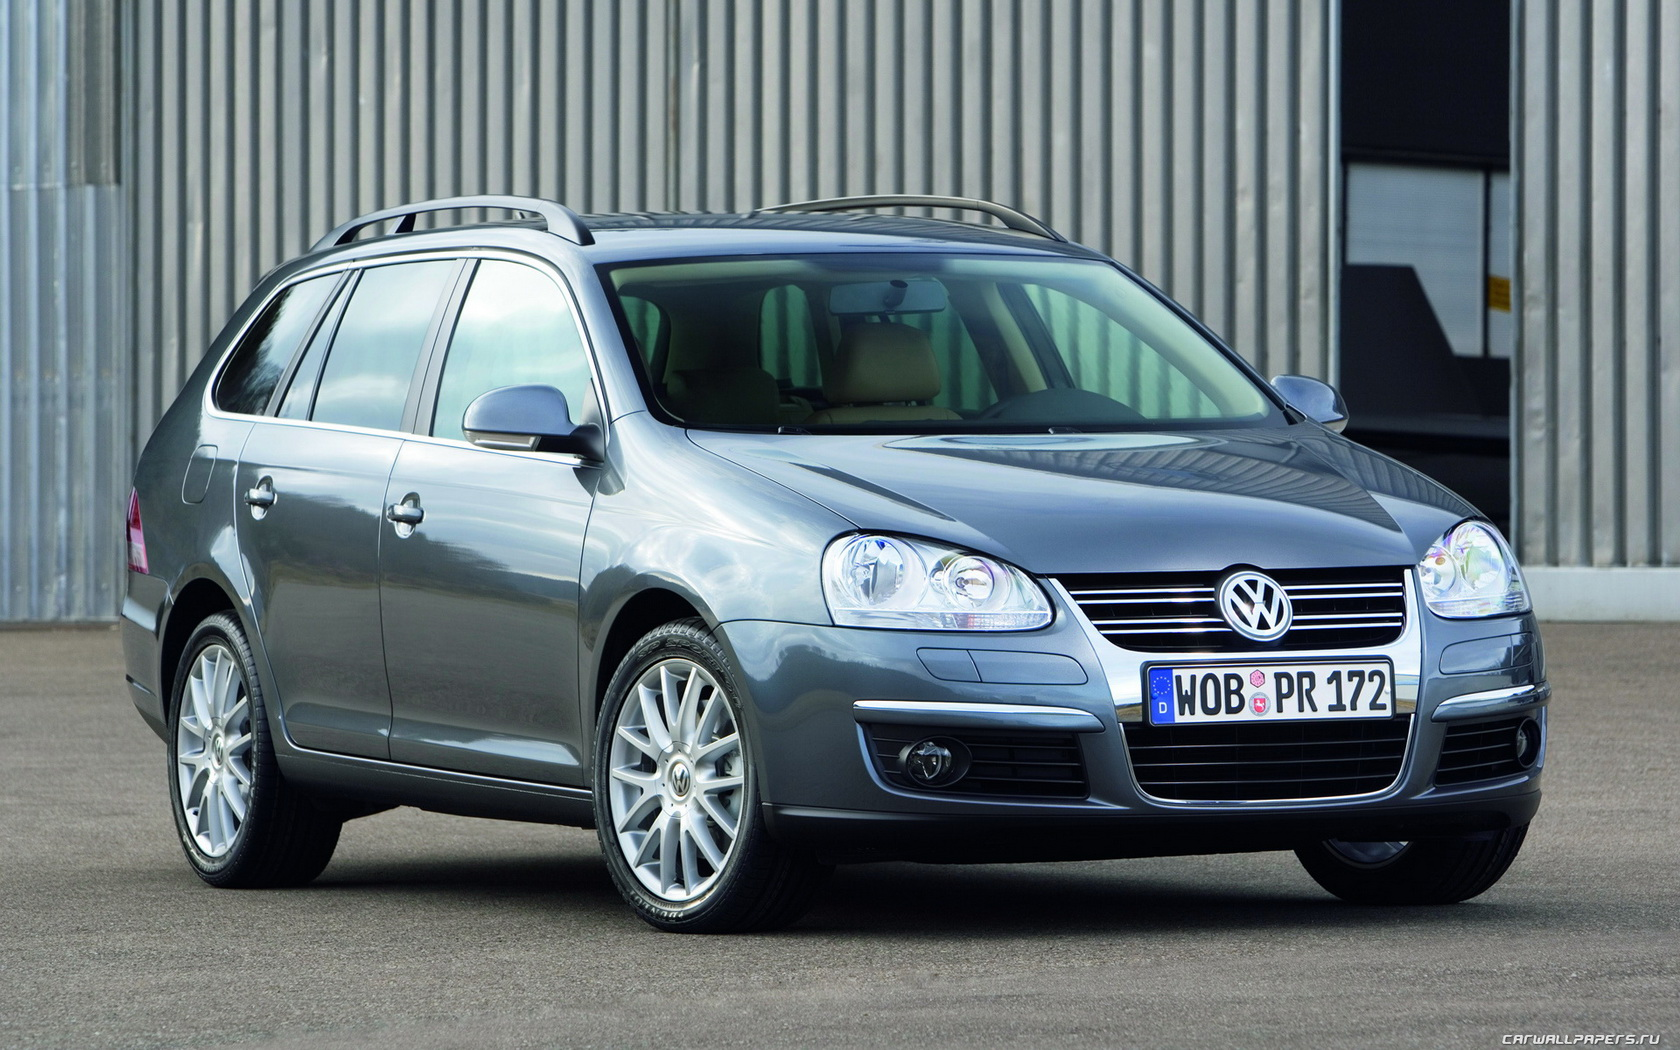 2007 Volkswagen Golf Variant Wagon 5-door